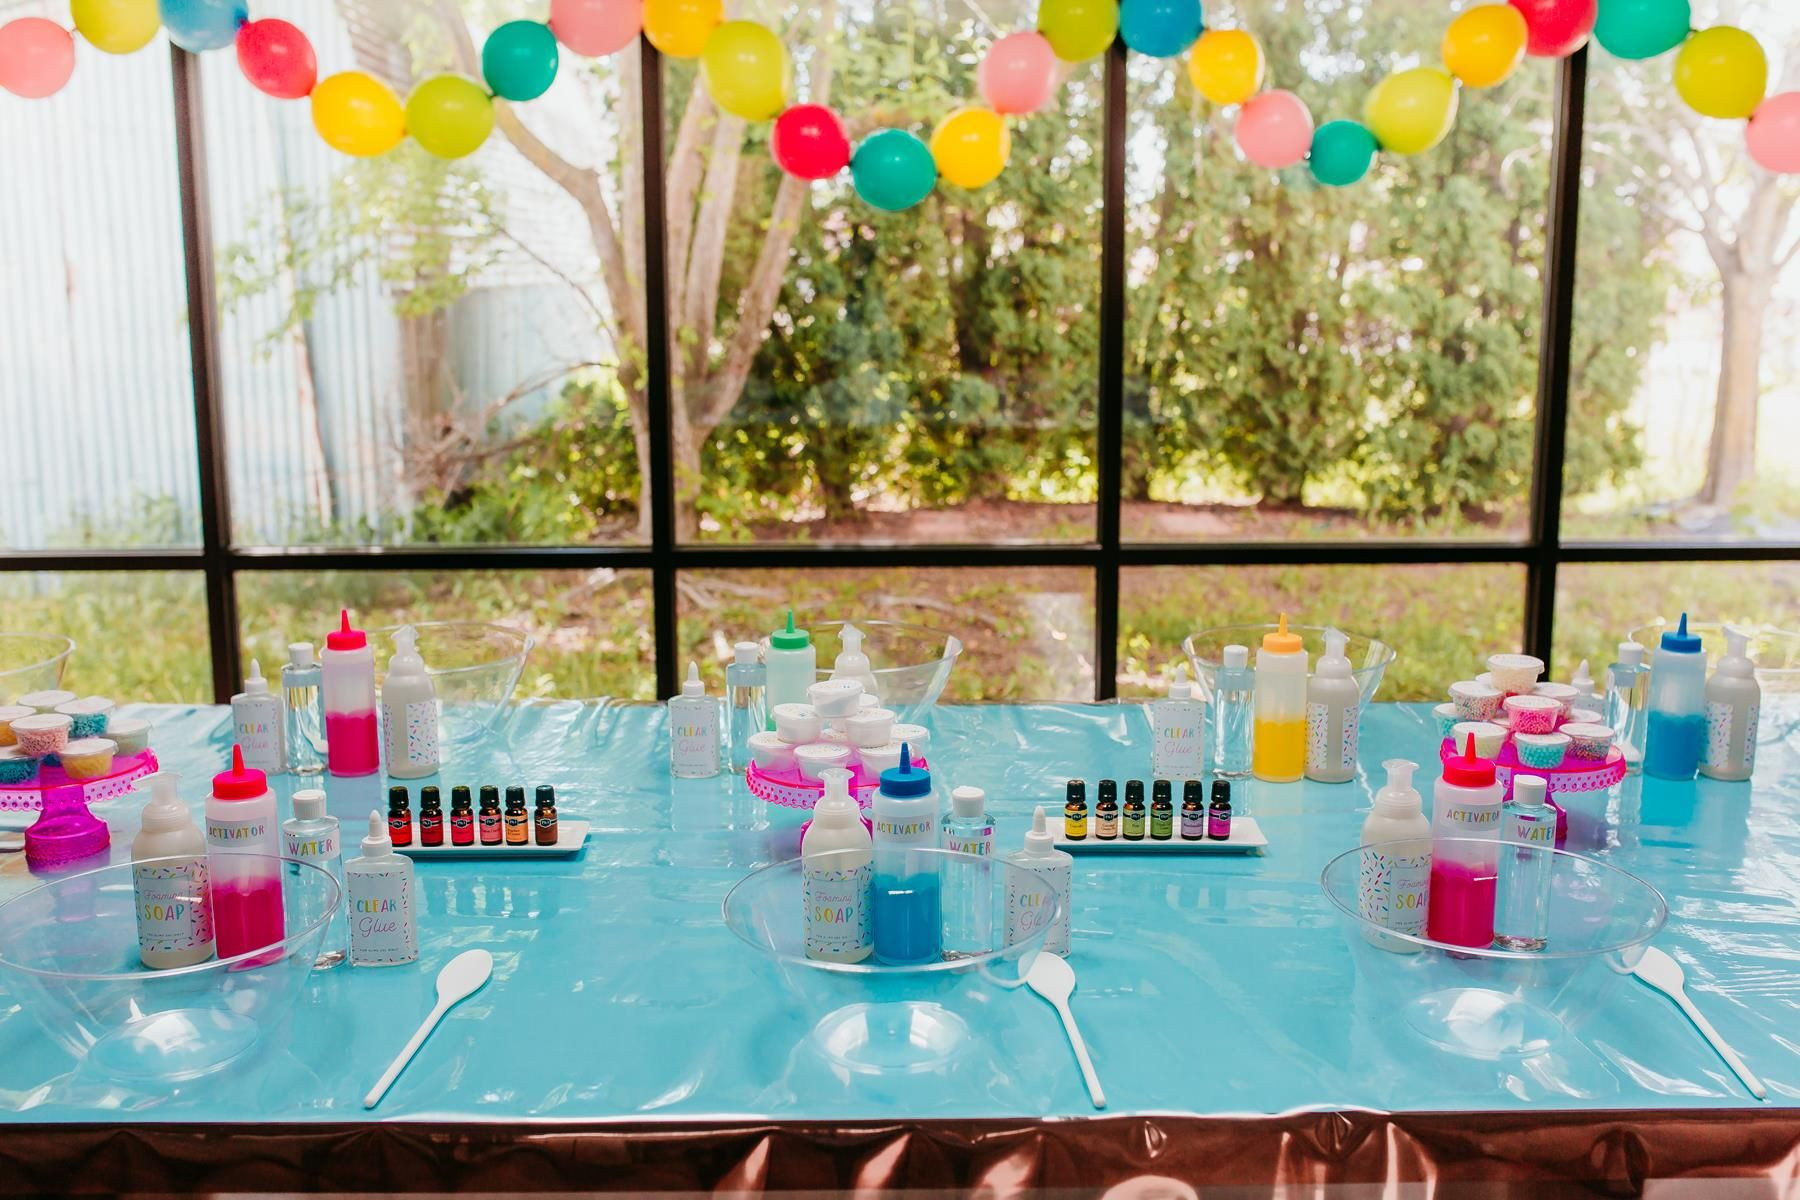 Slime Birthday Party Ideas  Slime Party Ideas 5 Best Slime Recipes